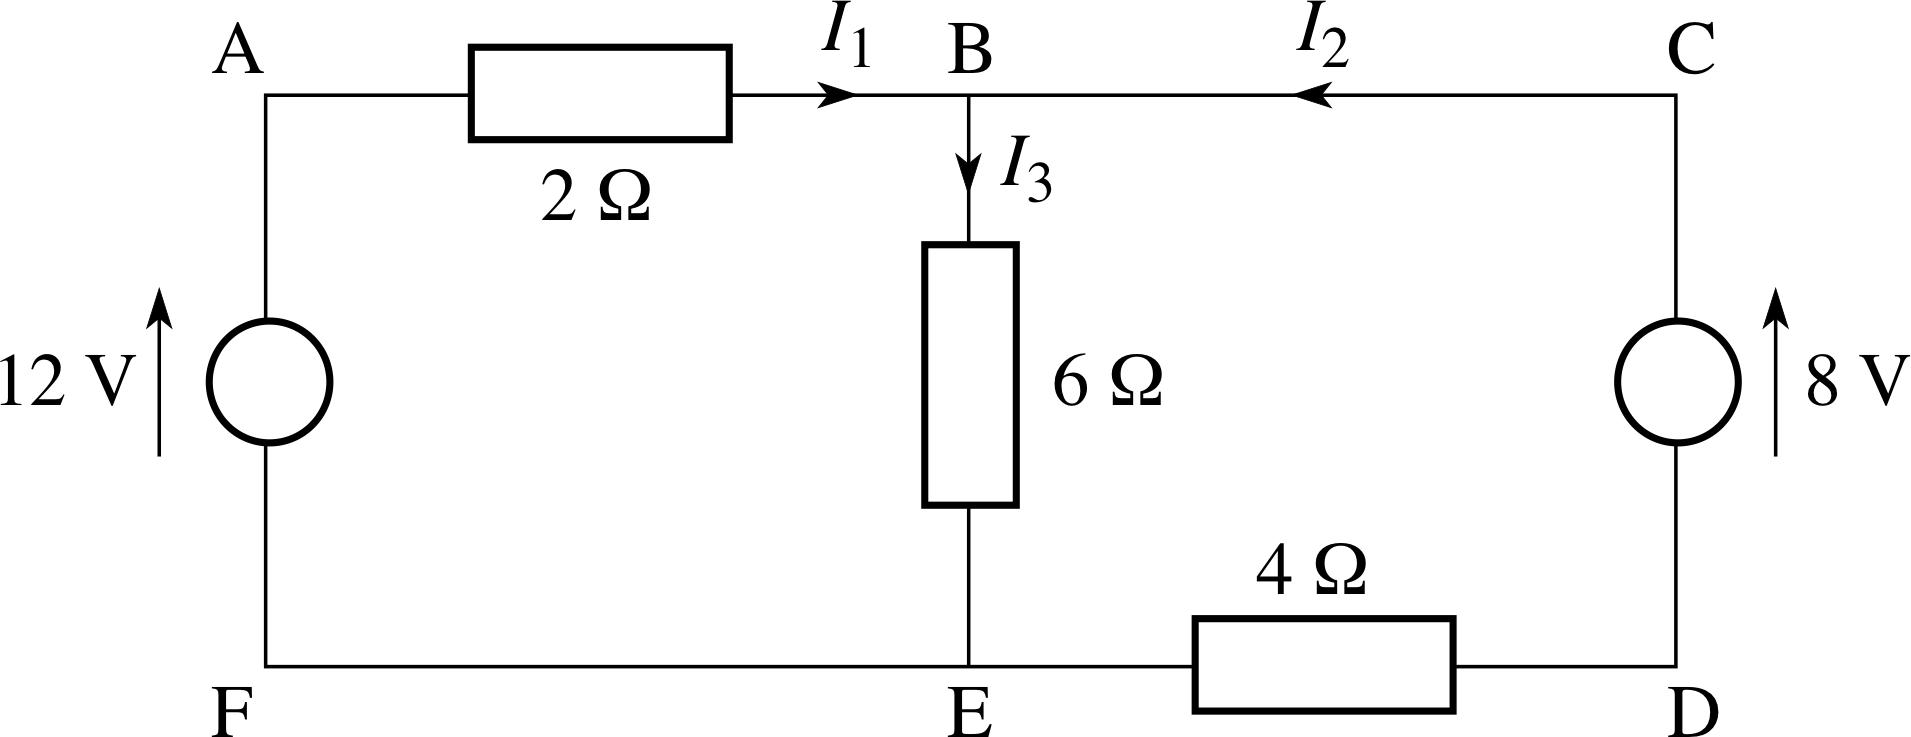 Pplato Flap Phys 41 Dc Circuits And Currents Connect The Series Circuit As Shown In Figure Below Using 10